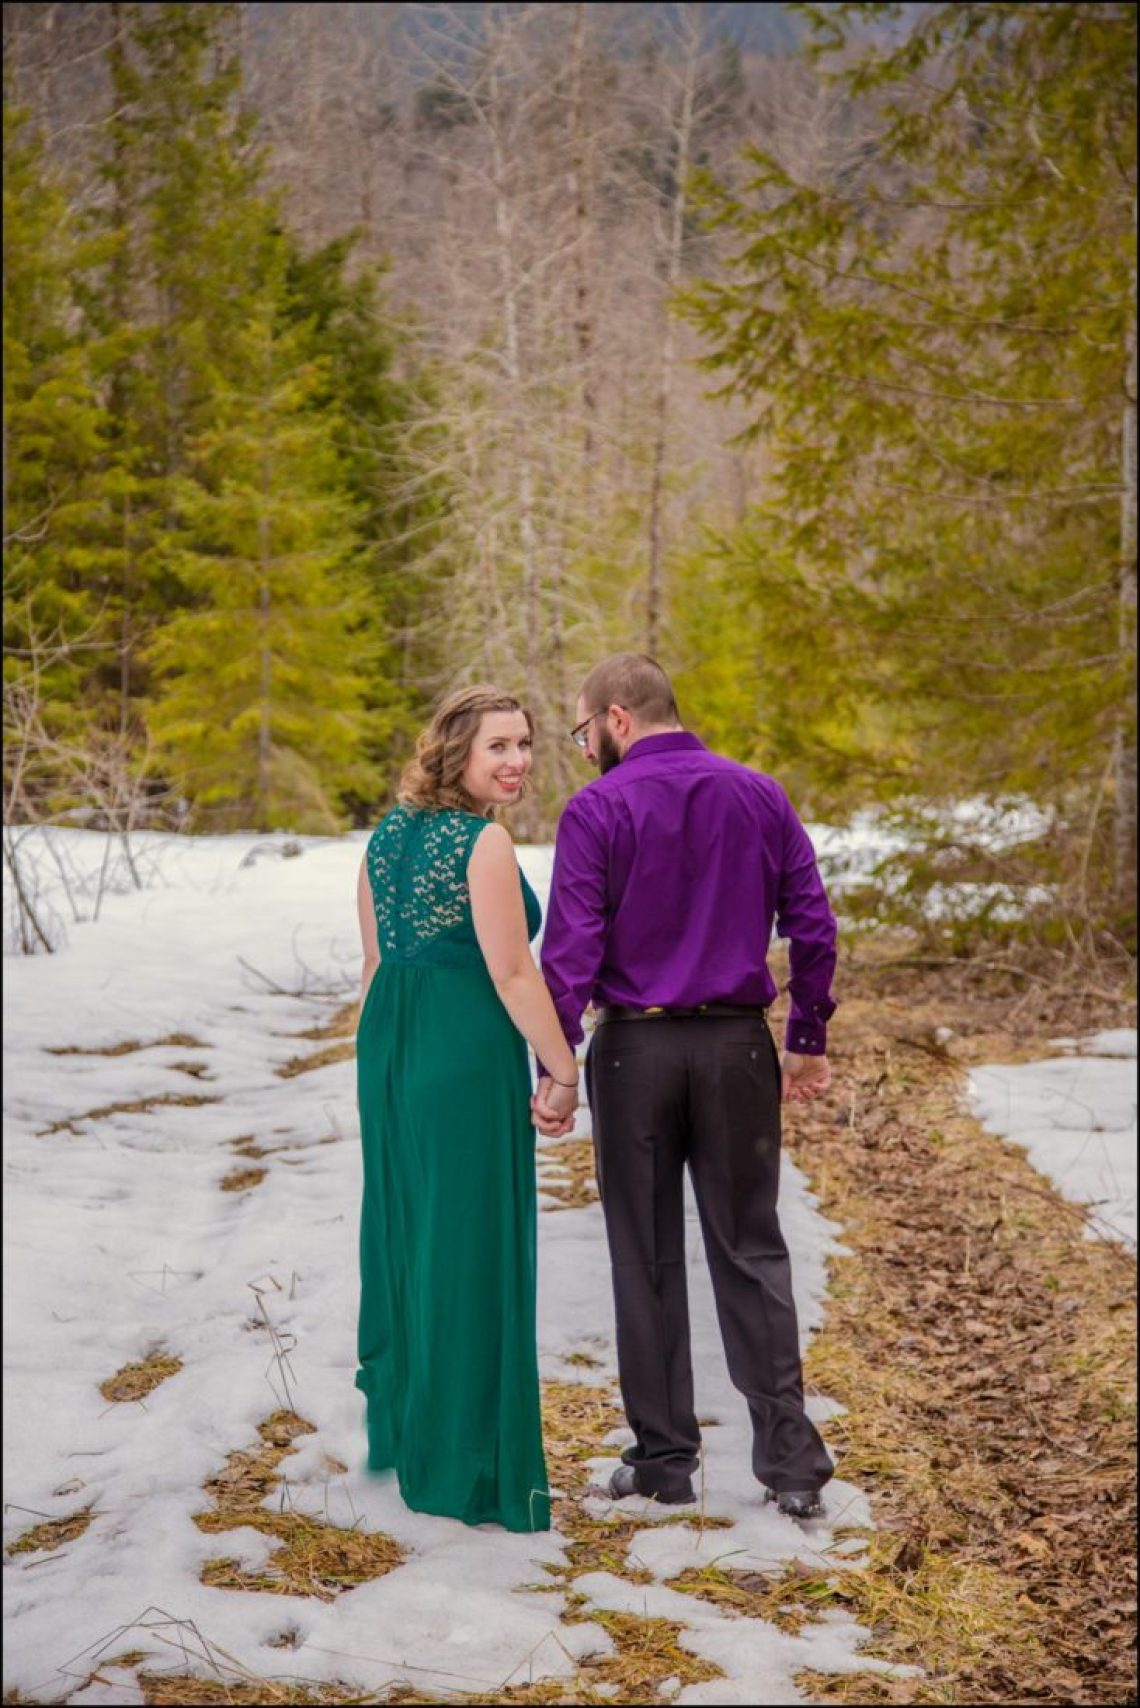 Lauren Hovig 136 I LOVE YOU I KNOW | MONEY CREEK ENGAGEMENT SESSION | SKYKOMISH, WA